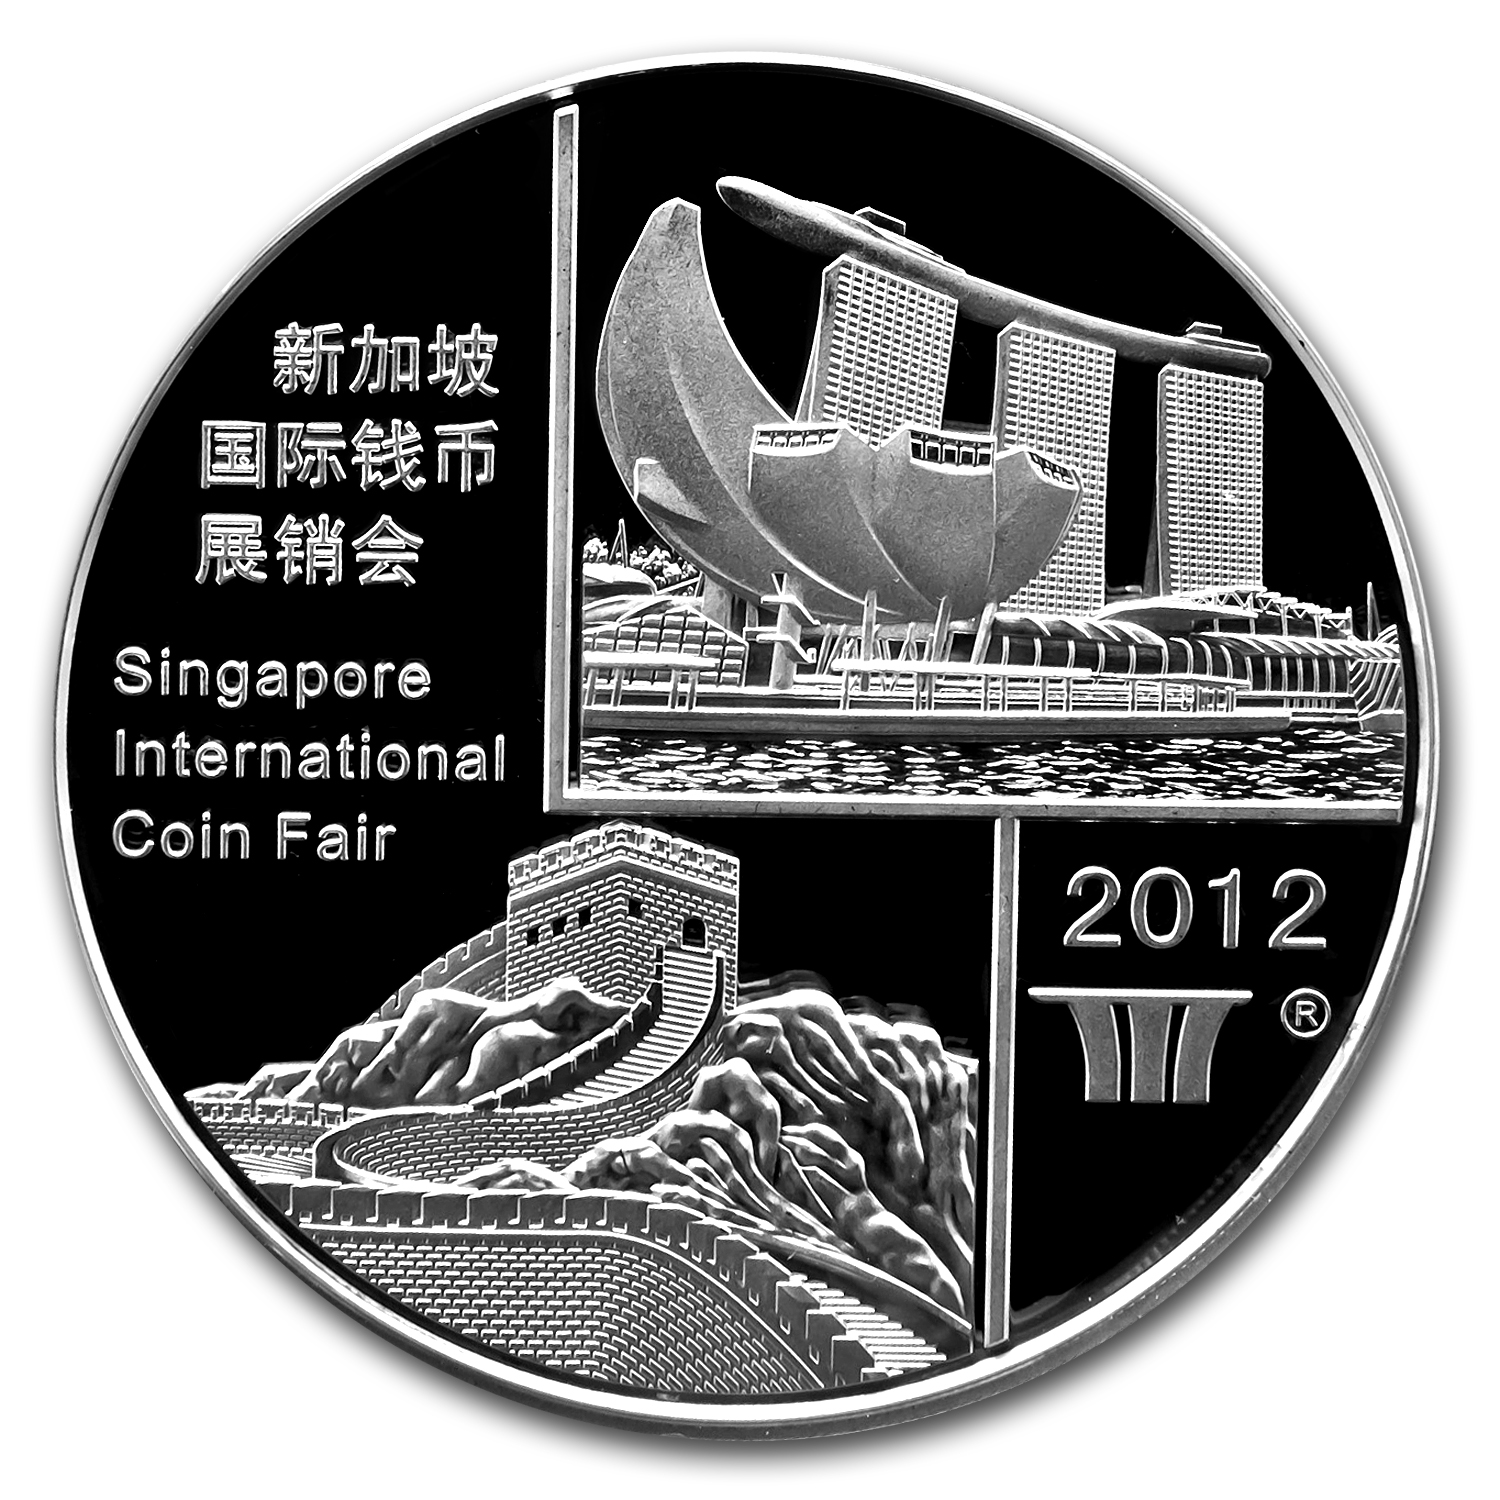 2012 China 5 oz Silver Panda Singapore Coin Fair (w/Box & COA)